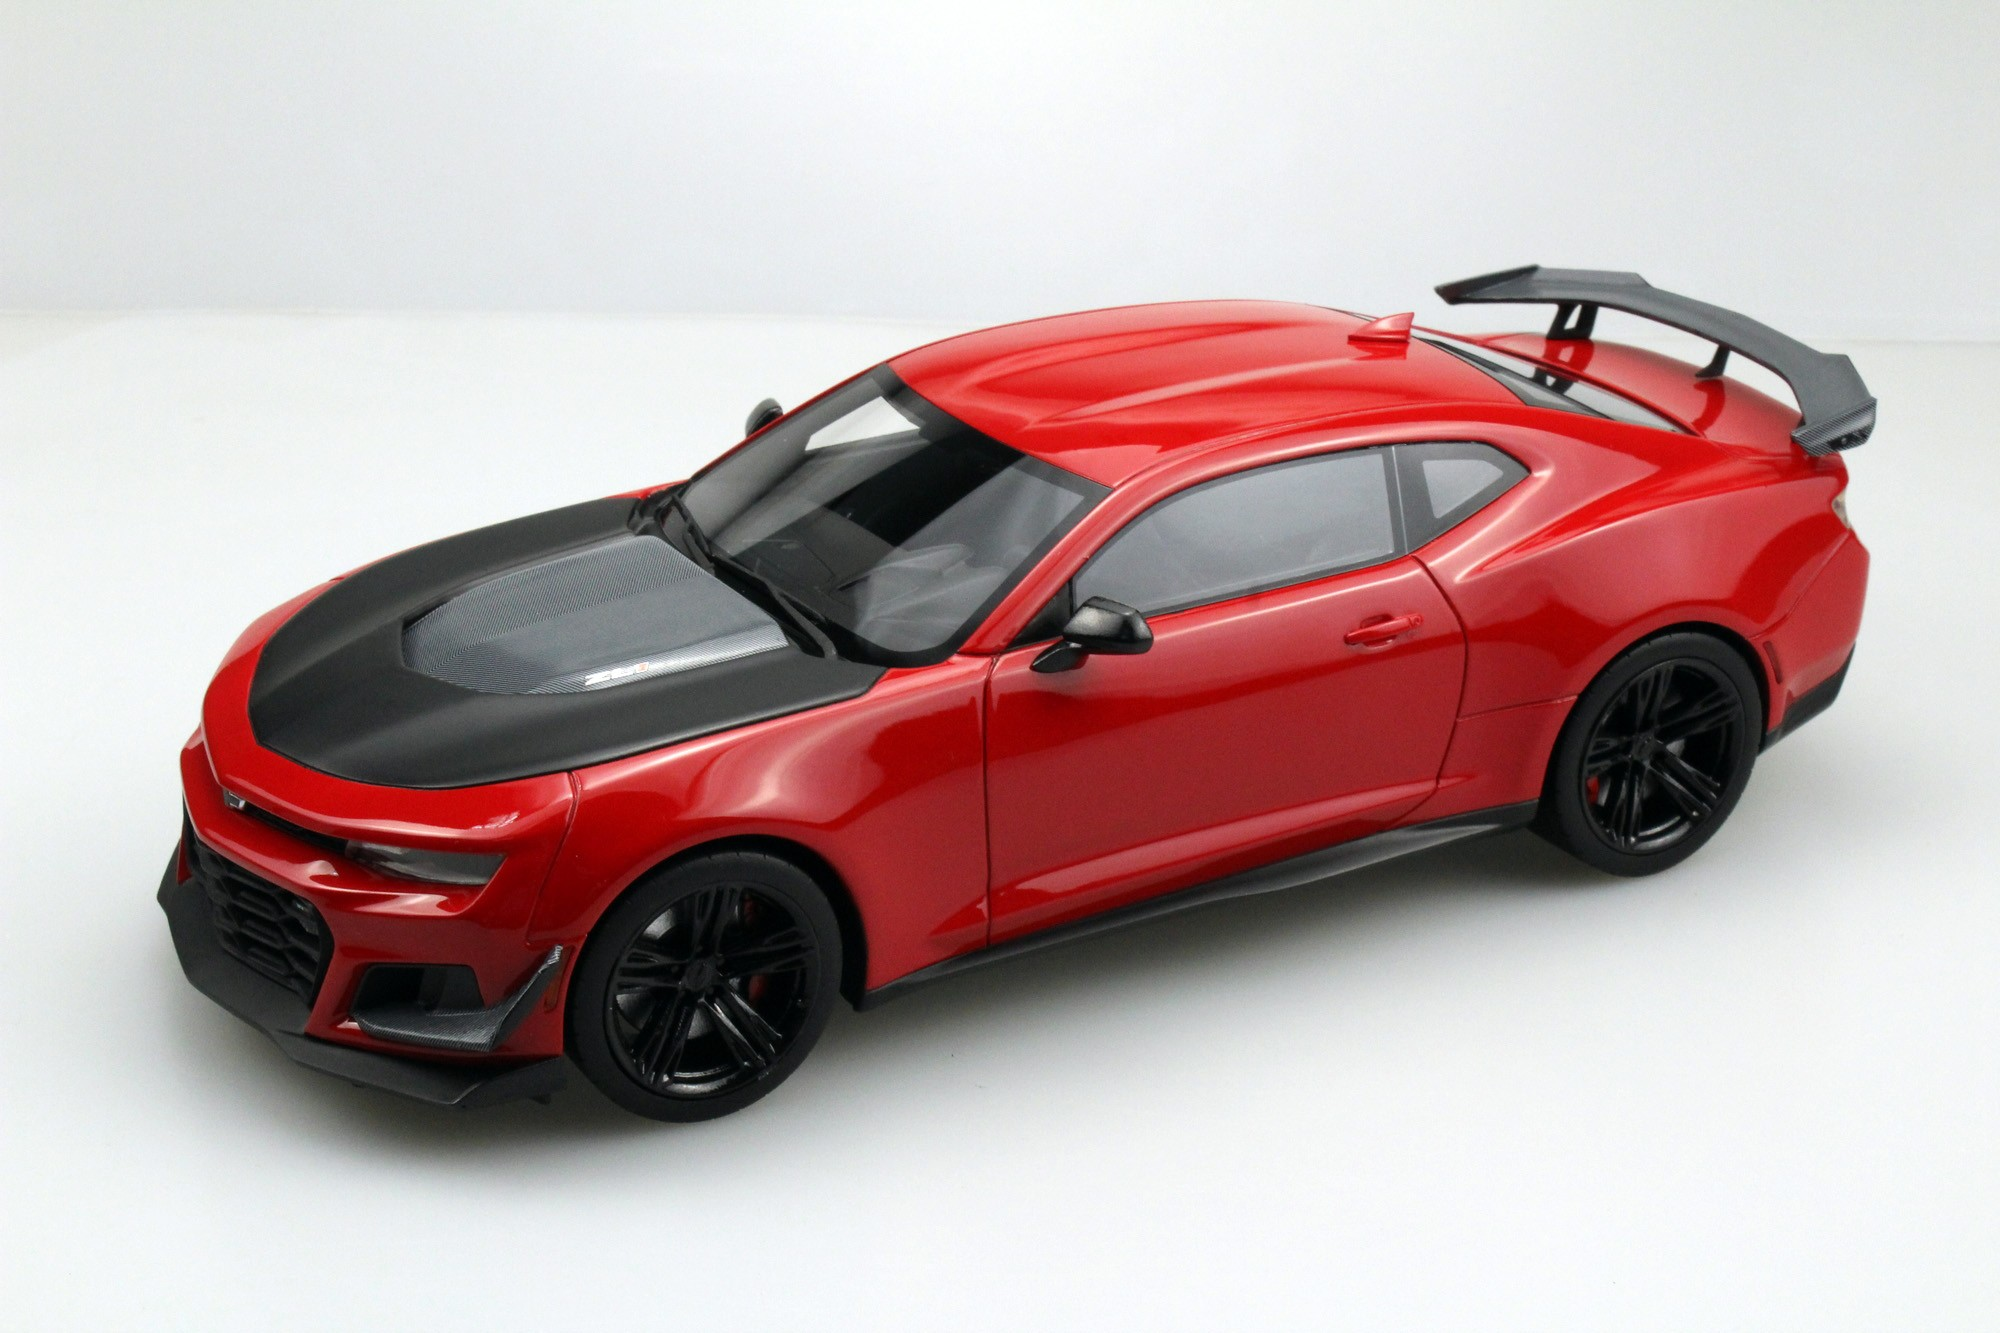 LS Collectibles ZL1 1LE Camaro Hennessey HPE850, 1:18 red | LS039B